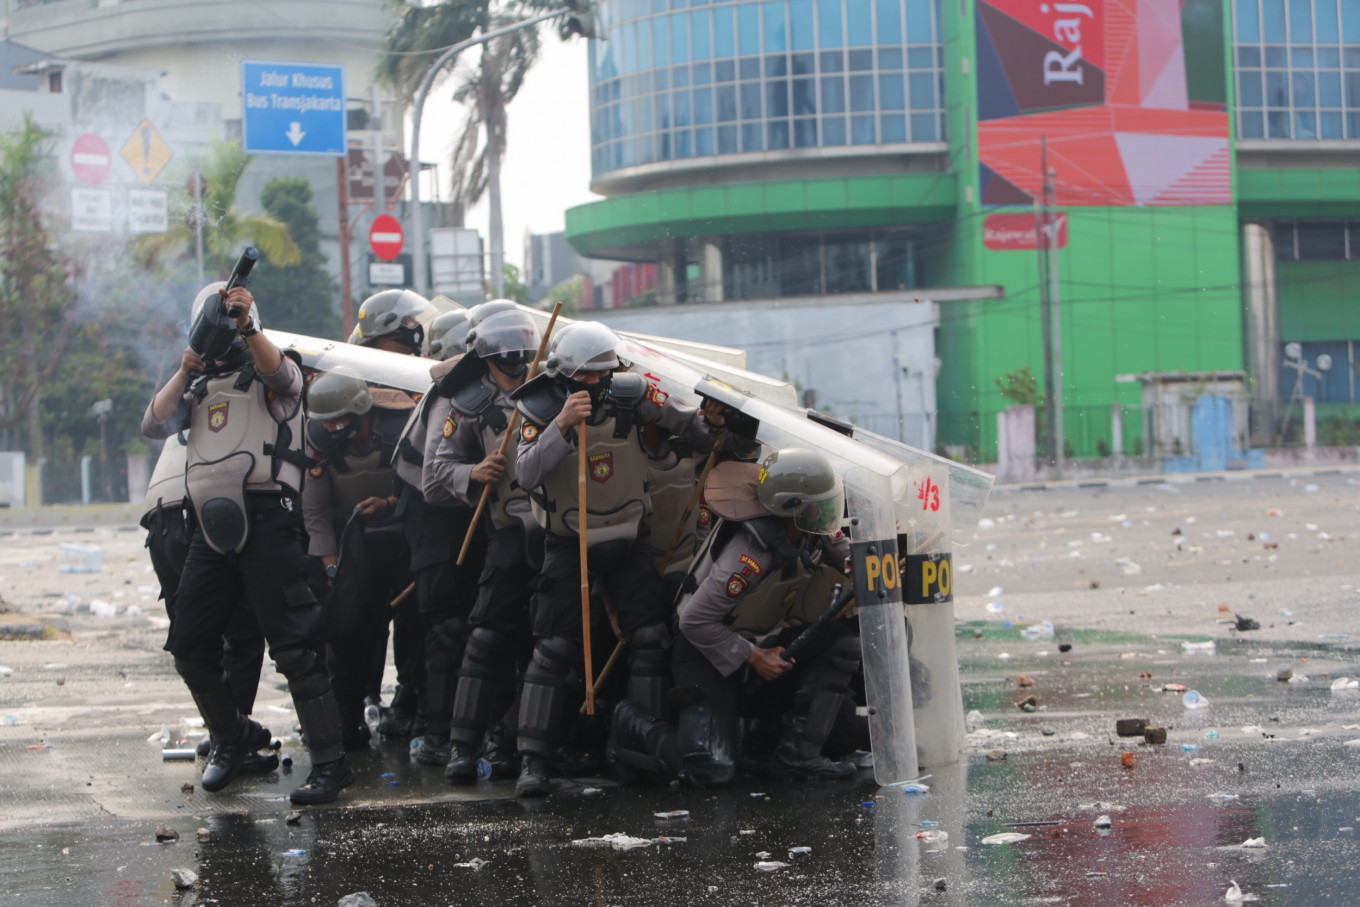 Eight Bekasi police test positive for COVID-19 after handling jobs law protests